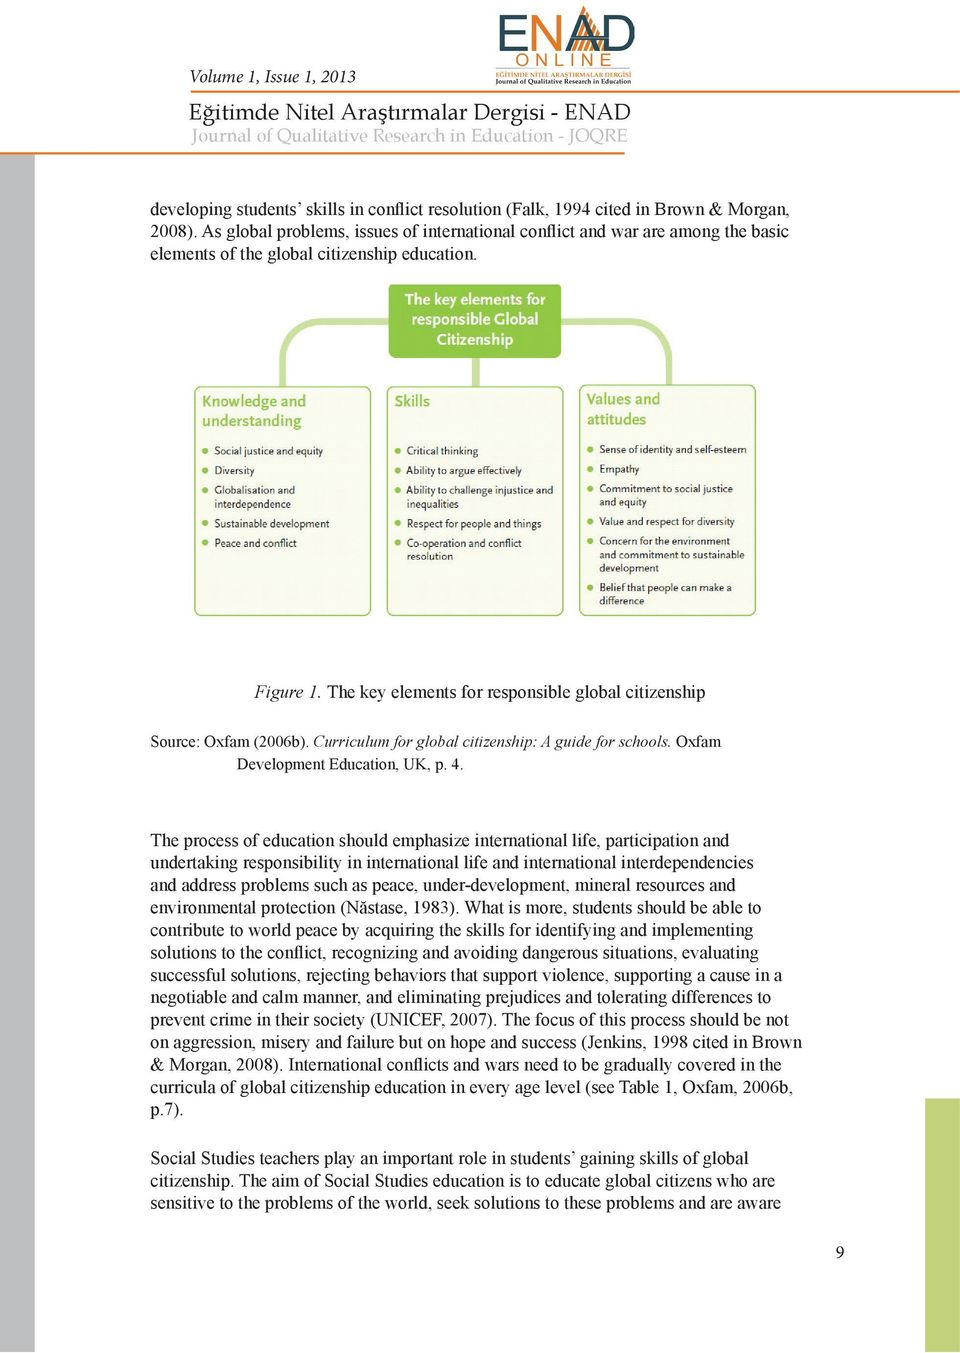 The key elements for responsible global citizenship Source: Oxfam (2006b). Curriculum for global citizenship: A guide for schools. Oxfam Development Education, UK, p. 4.